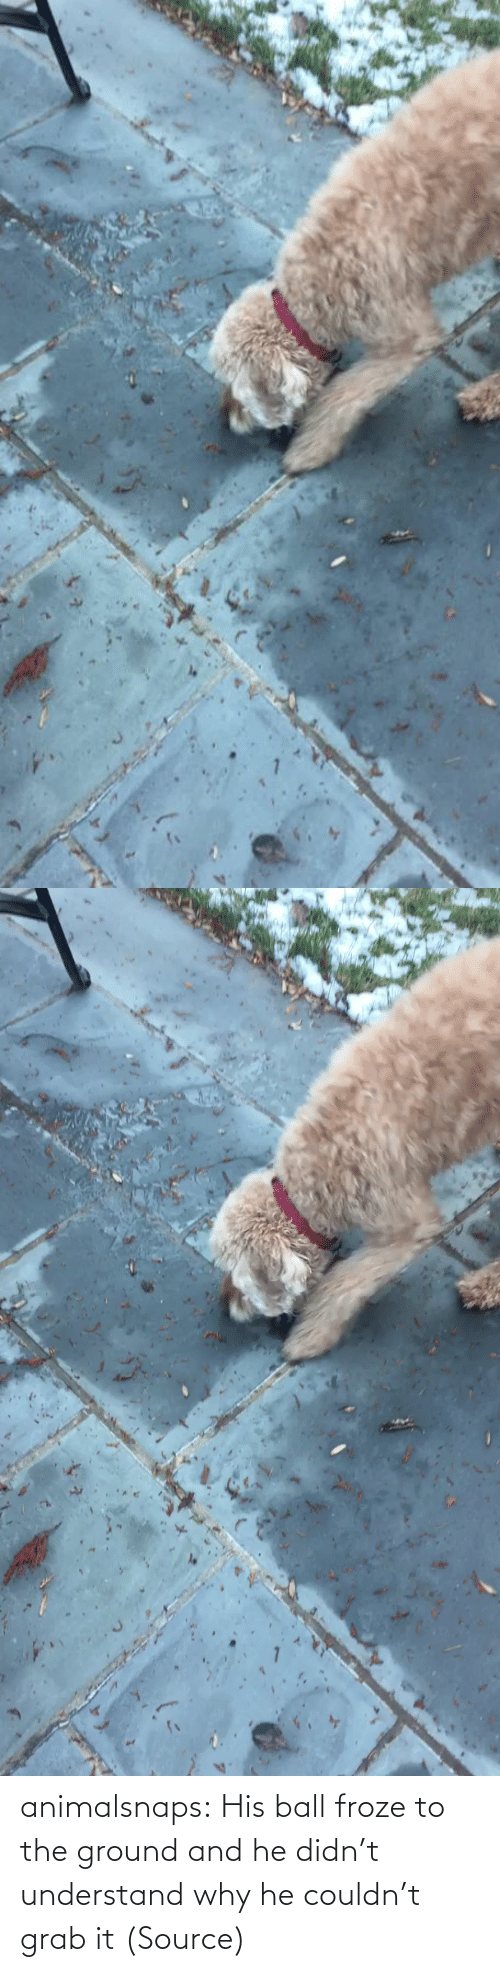 ball: animalsnaps:  His ball froze to the ground and he didn't understand why he couldn't grab it (Source)